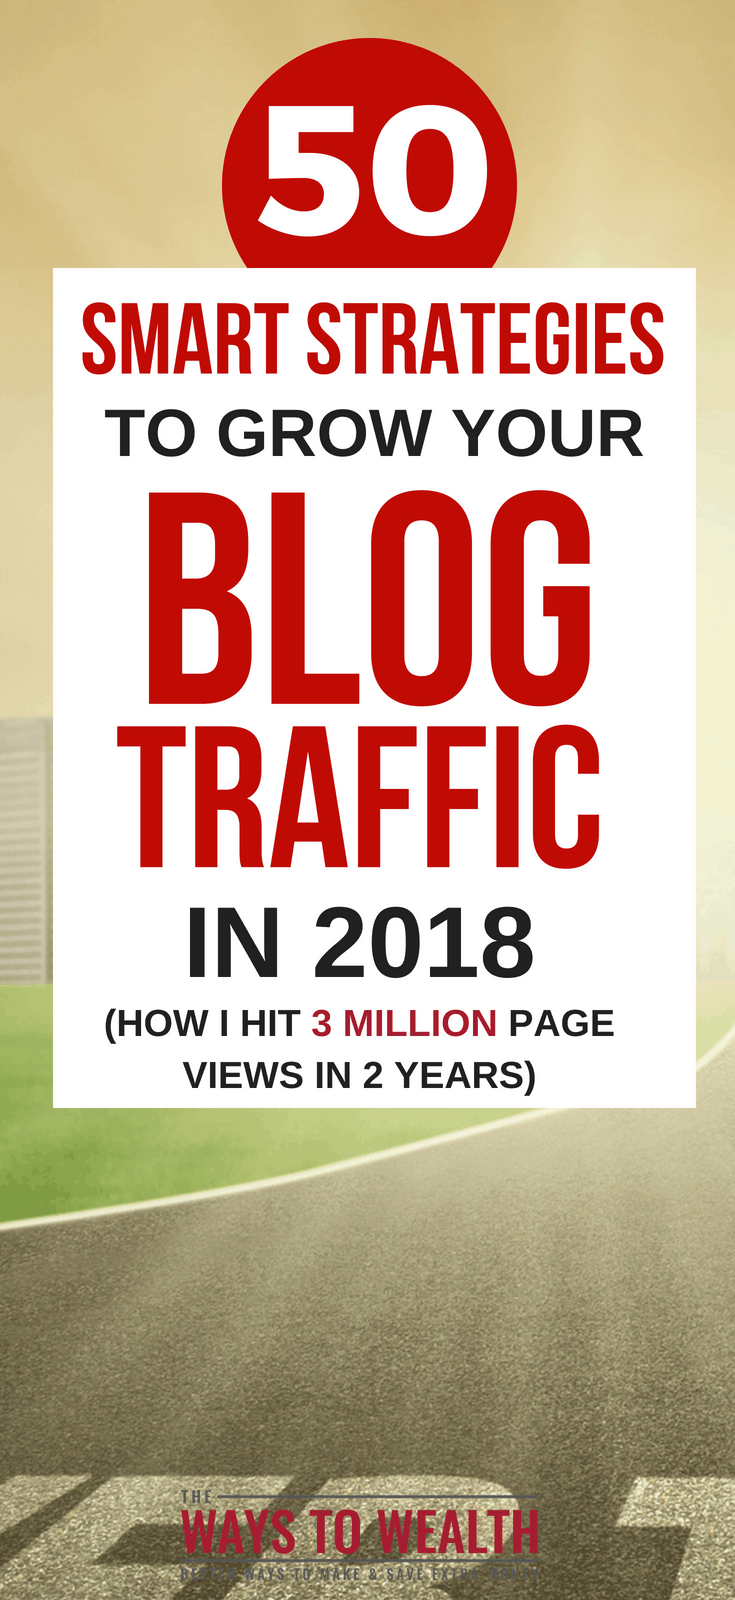 50+ Traffic Tips for 3 Million Views in 2 YearsDiscover how to get your blog noticed. Here's 50+ traffic tips from a blog with over 3 million page views in 2 years.blogging tips 2018 | blog traffic increase | facebook marketing strategy | pinterest marketing strategies | blogging#thewaystowealth #blog #blogging #makemoney #makemoneyonline #facebook #pinterest